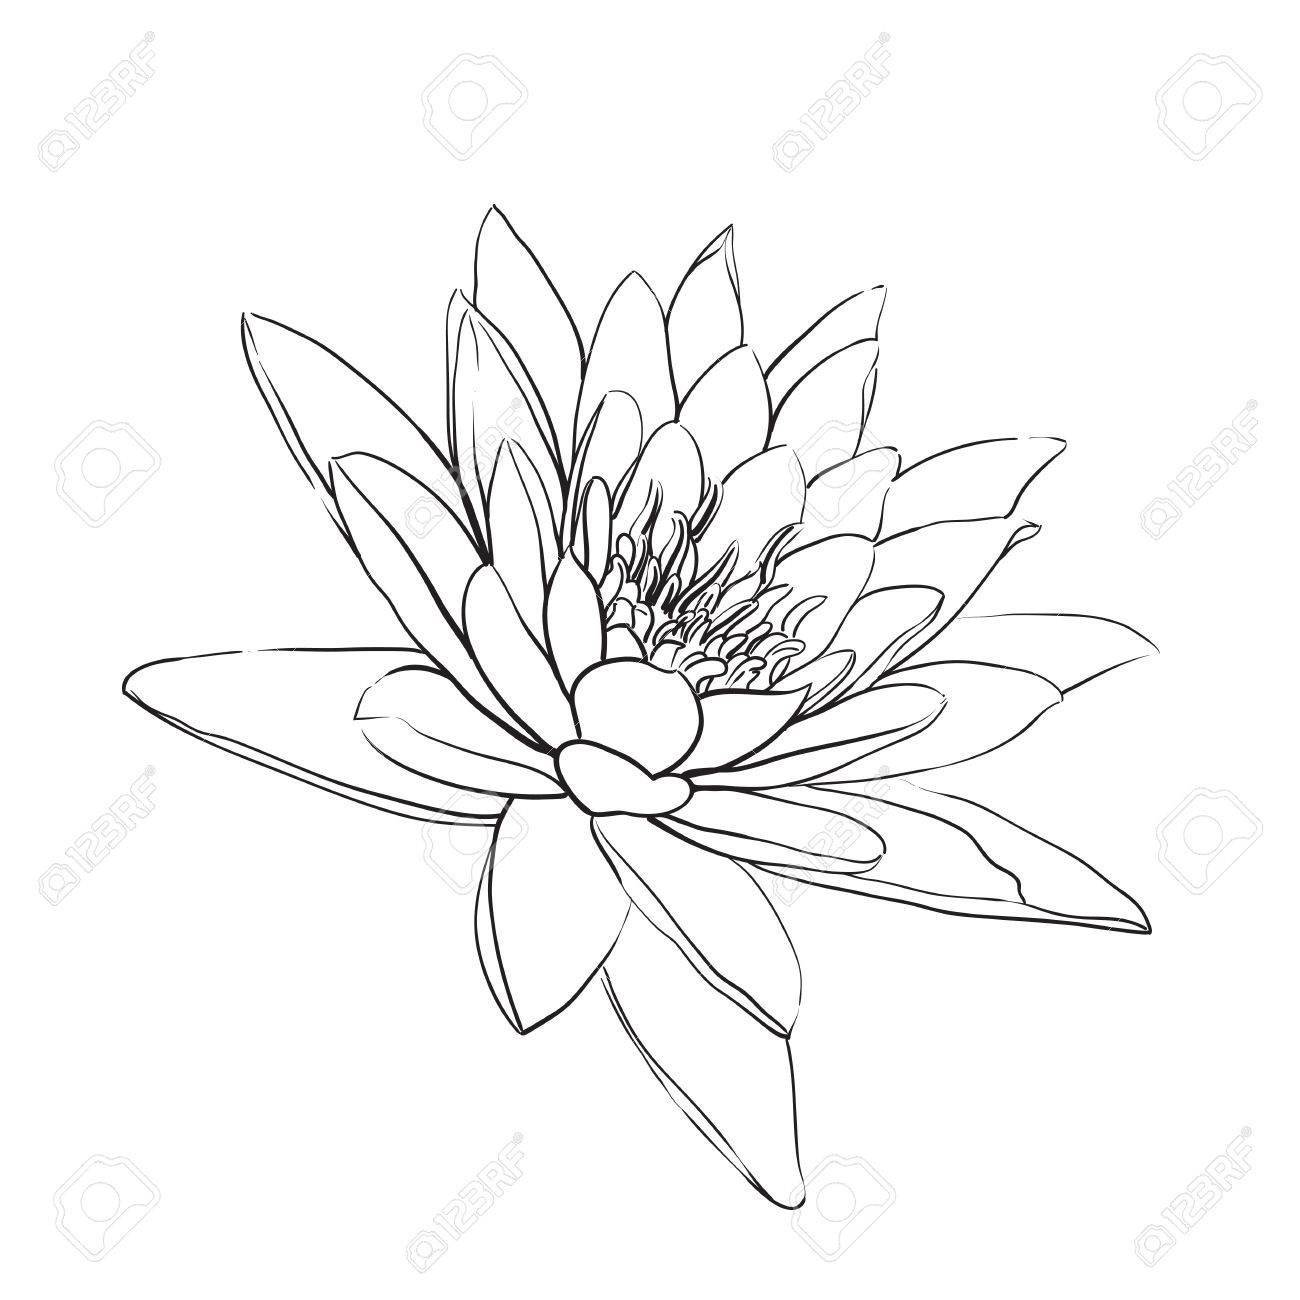 Outline lotus flower on white background royalty free cliparts outline lotus flower on white background stock vector 43744777 mightylinksfo